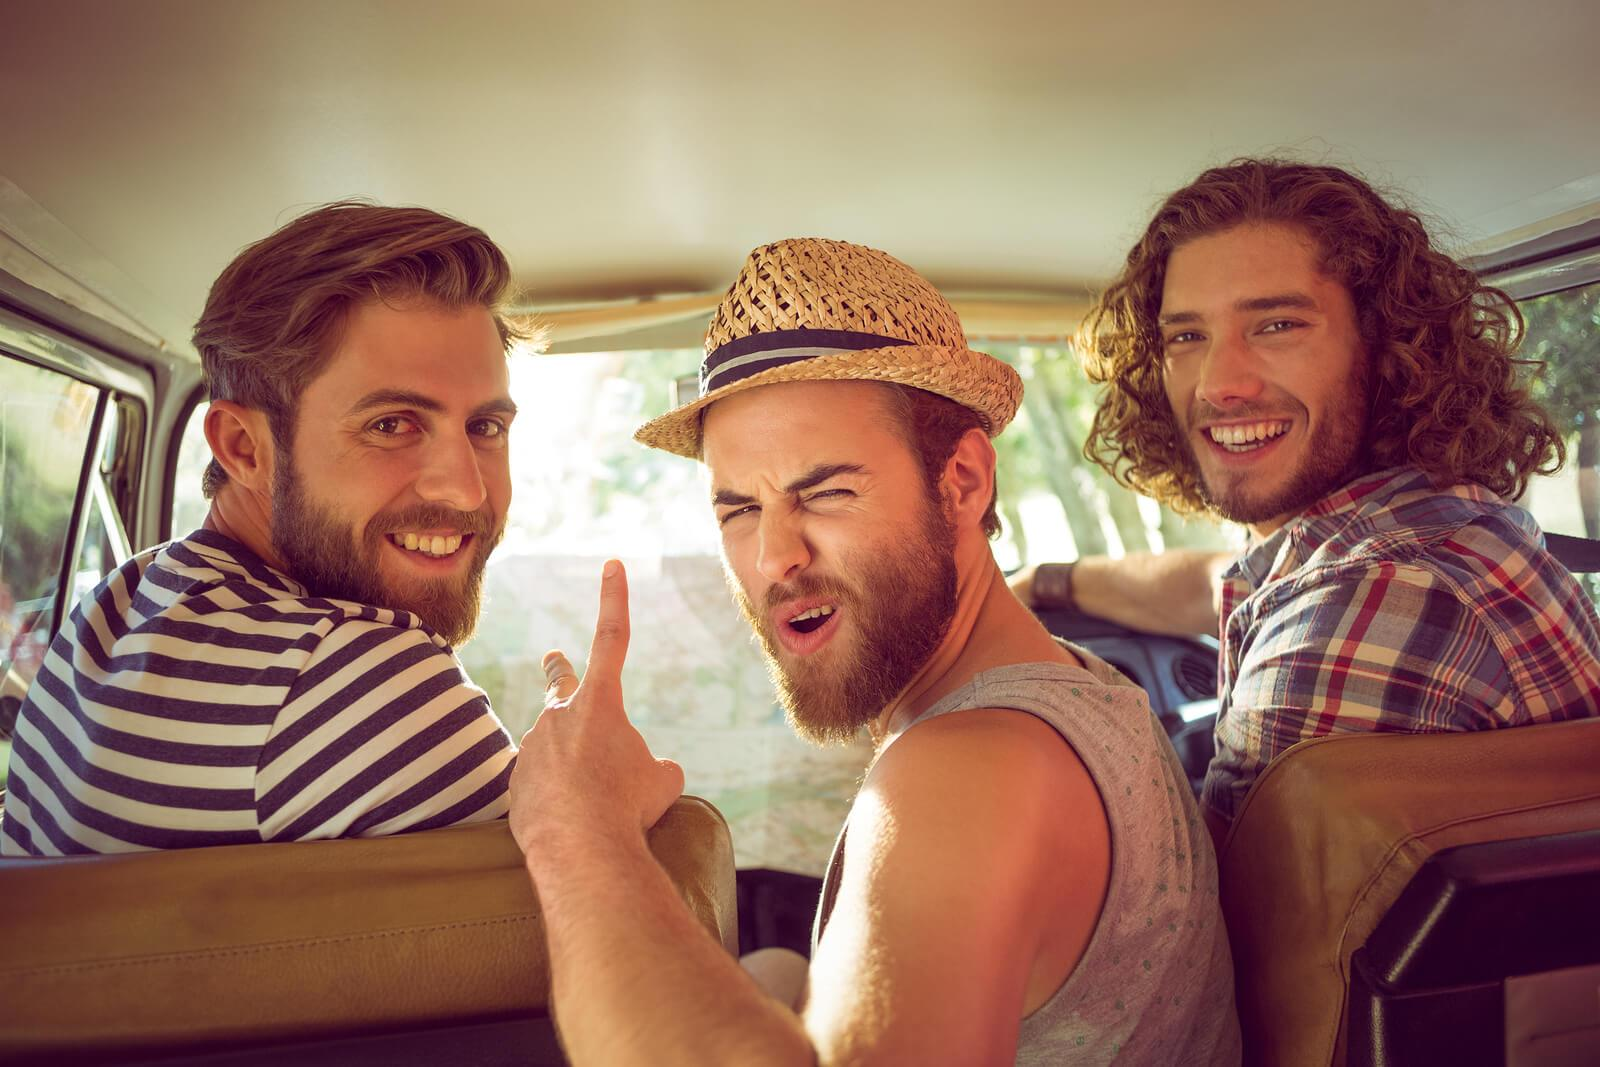 bigstock-Hipster-friends-on-road-trip-o-84979838